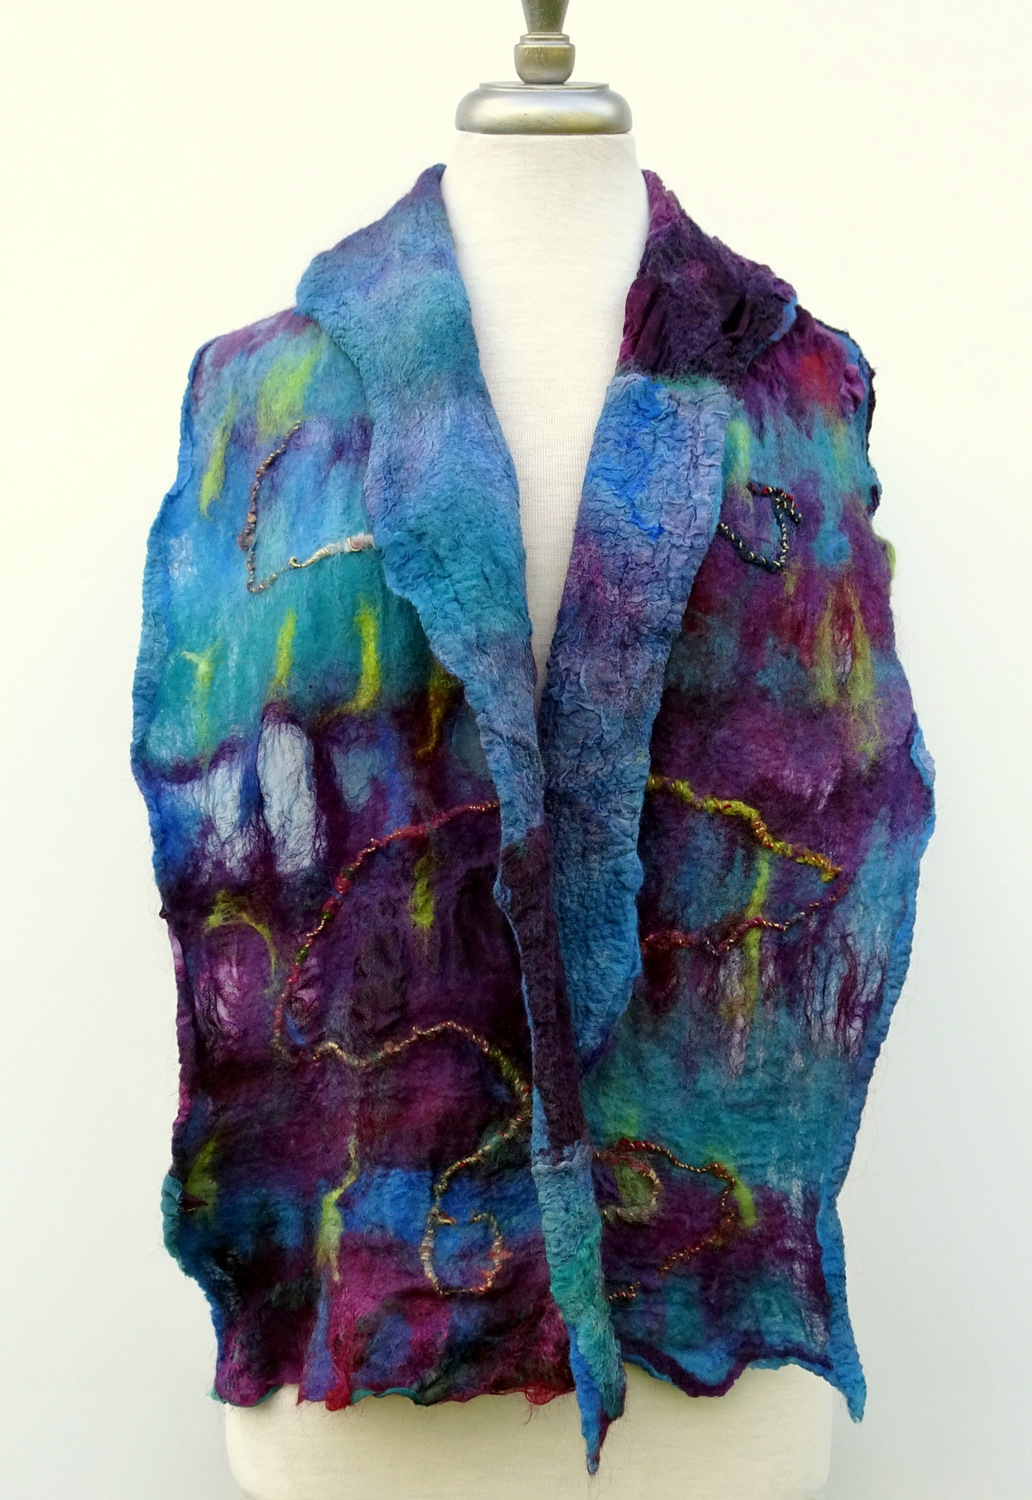 5-Ruth Duckworth, Fine Art Fiber, SVFAL-004.JPG